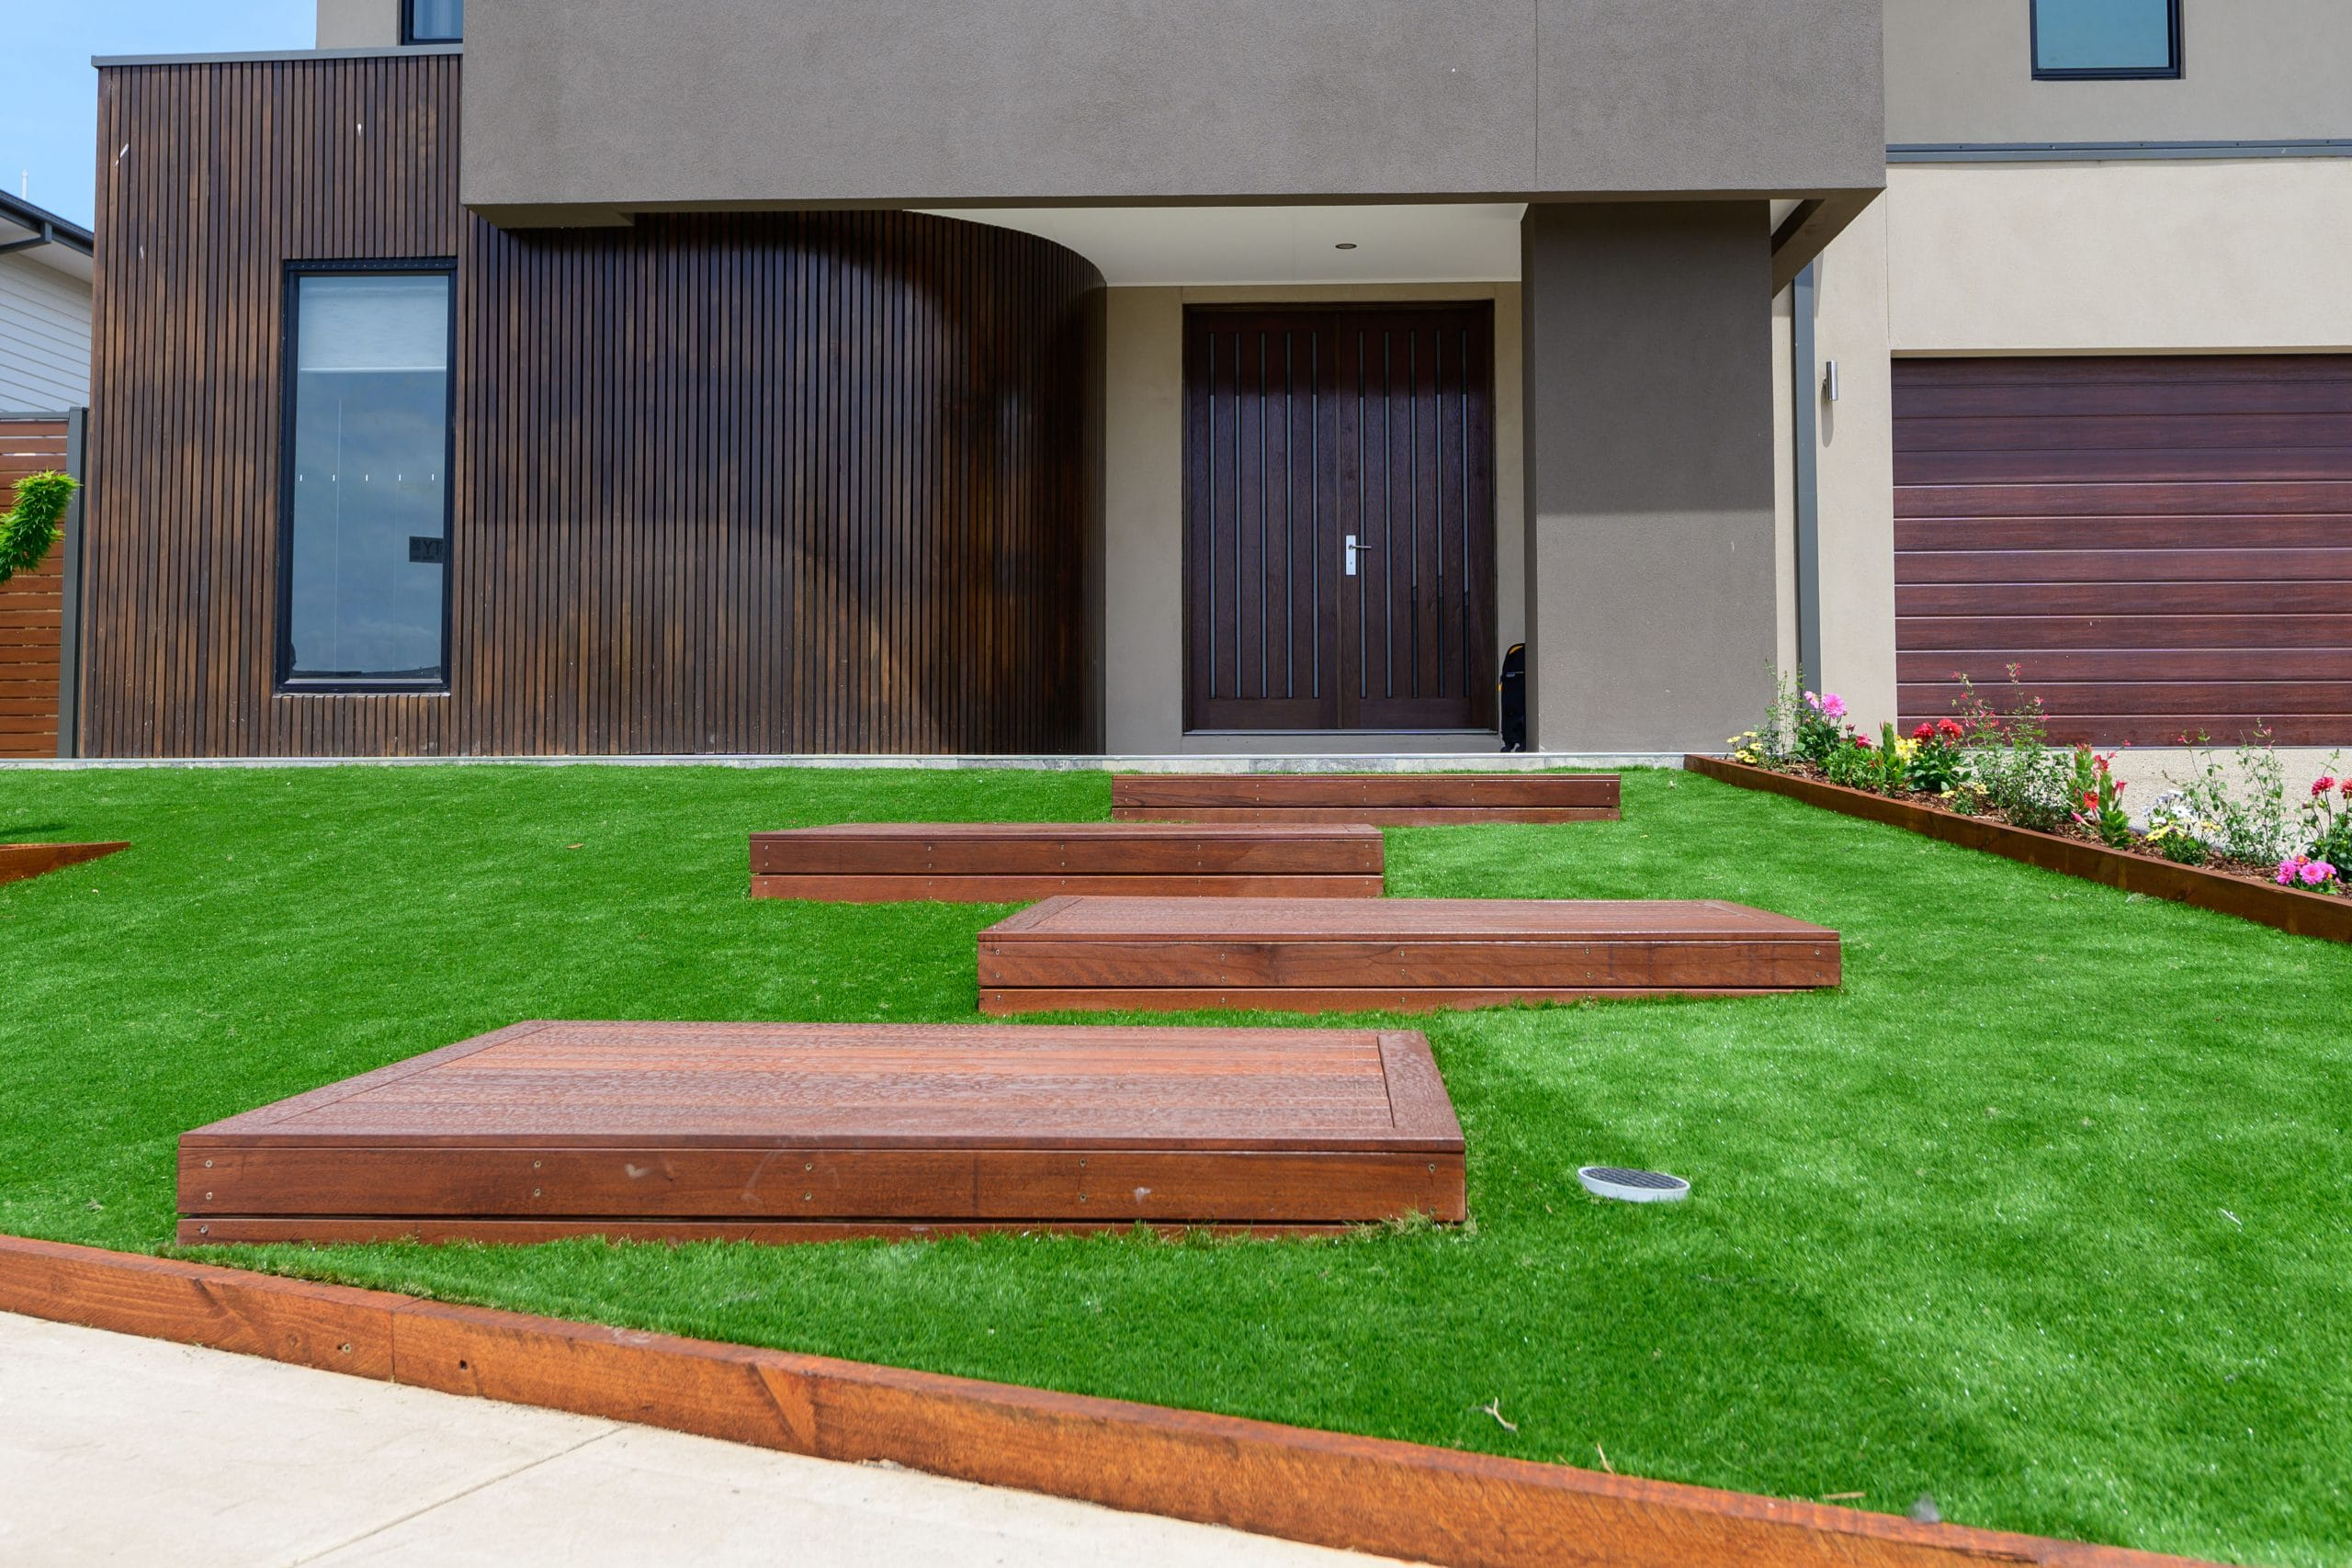 L271 - Point Cook - Front yard with wooden staircase going to front door